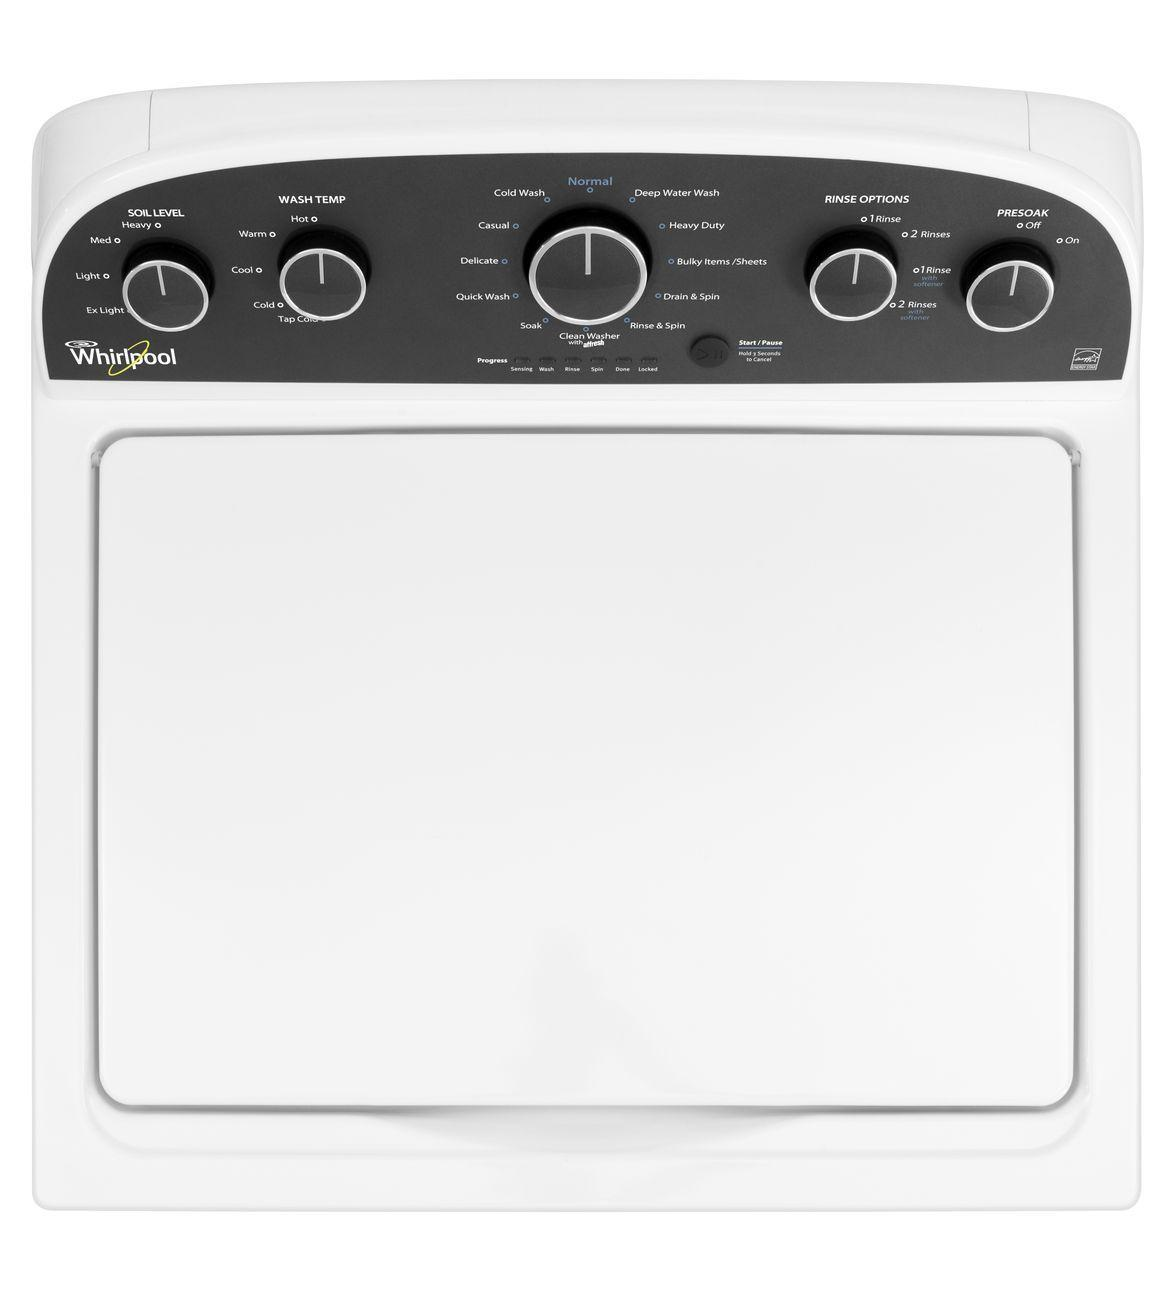 "Whirlpool WTW4850BW 27"" Top Load Washer With 3.6 Cu. Ft"